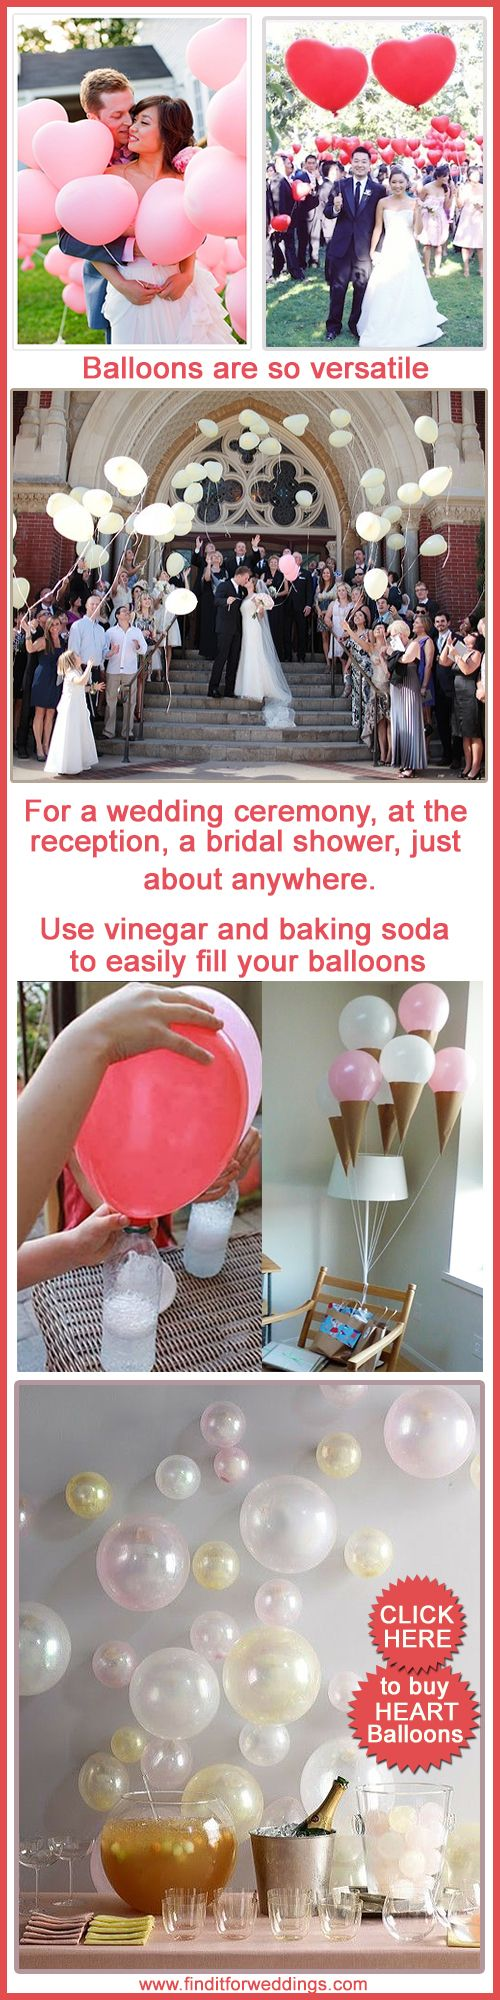 Diy wedding decorations party decorations balloons infographic diy wedding decorations party decorations balloons infographic finditforweddings click to buy heart balloons pinterest diy wedding junglespirit Images